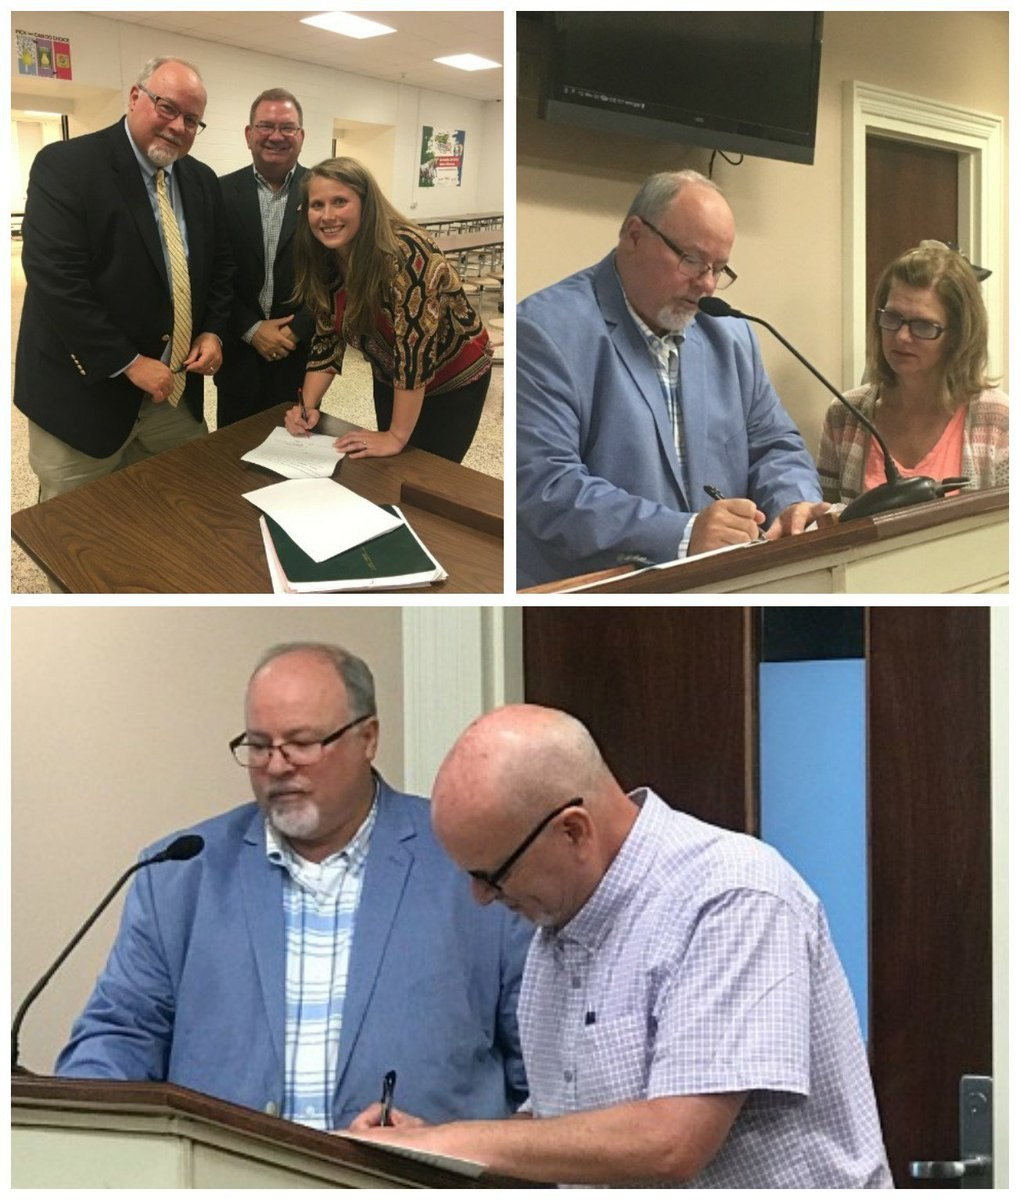 Collage photo showing pictures of Mr. McGee signing contracts with new employees.